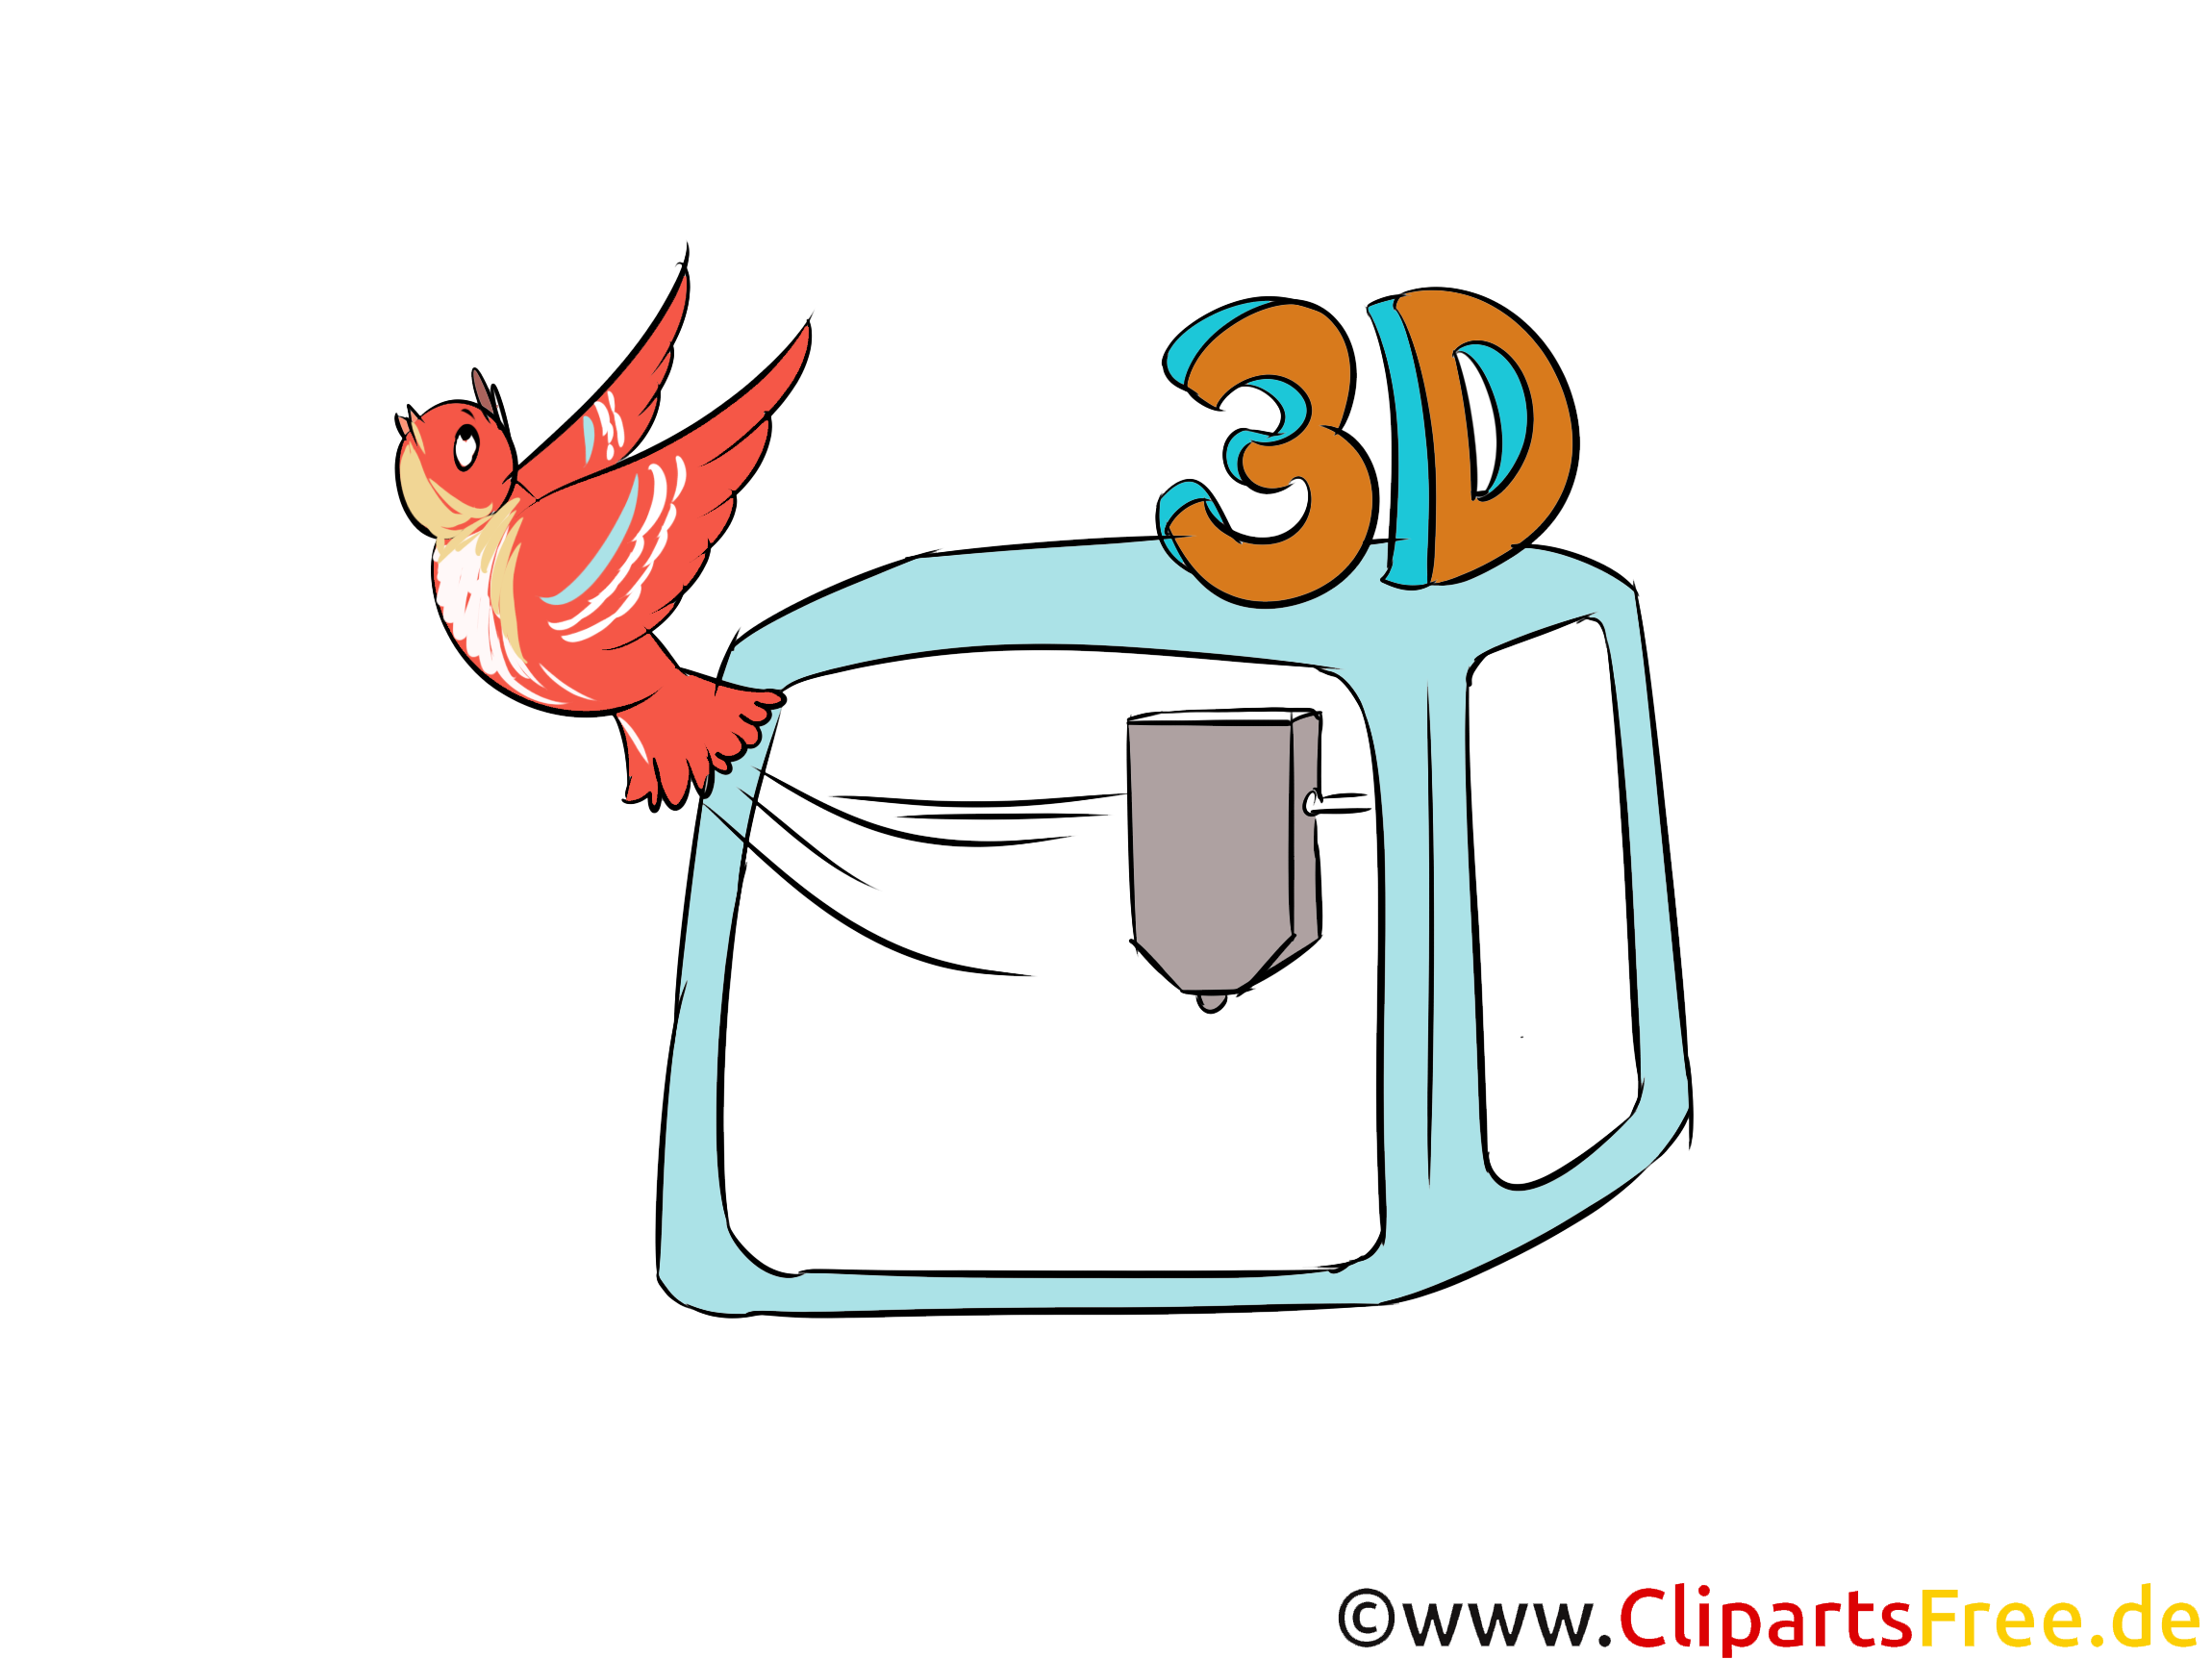 Dreidimensionaler Druck 3D Illustration, Cartoon, Comic, Clip Art